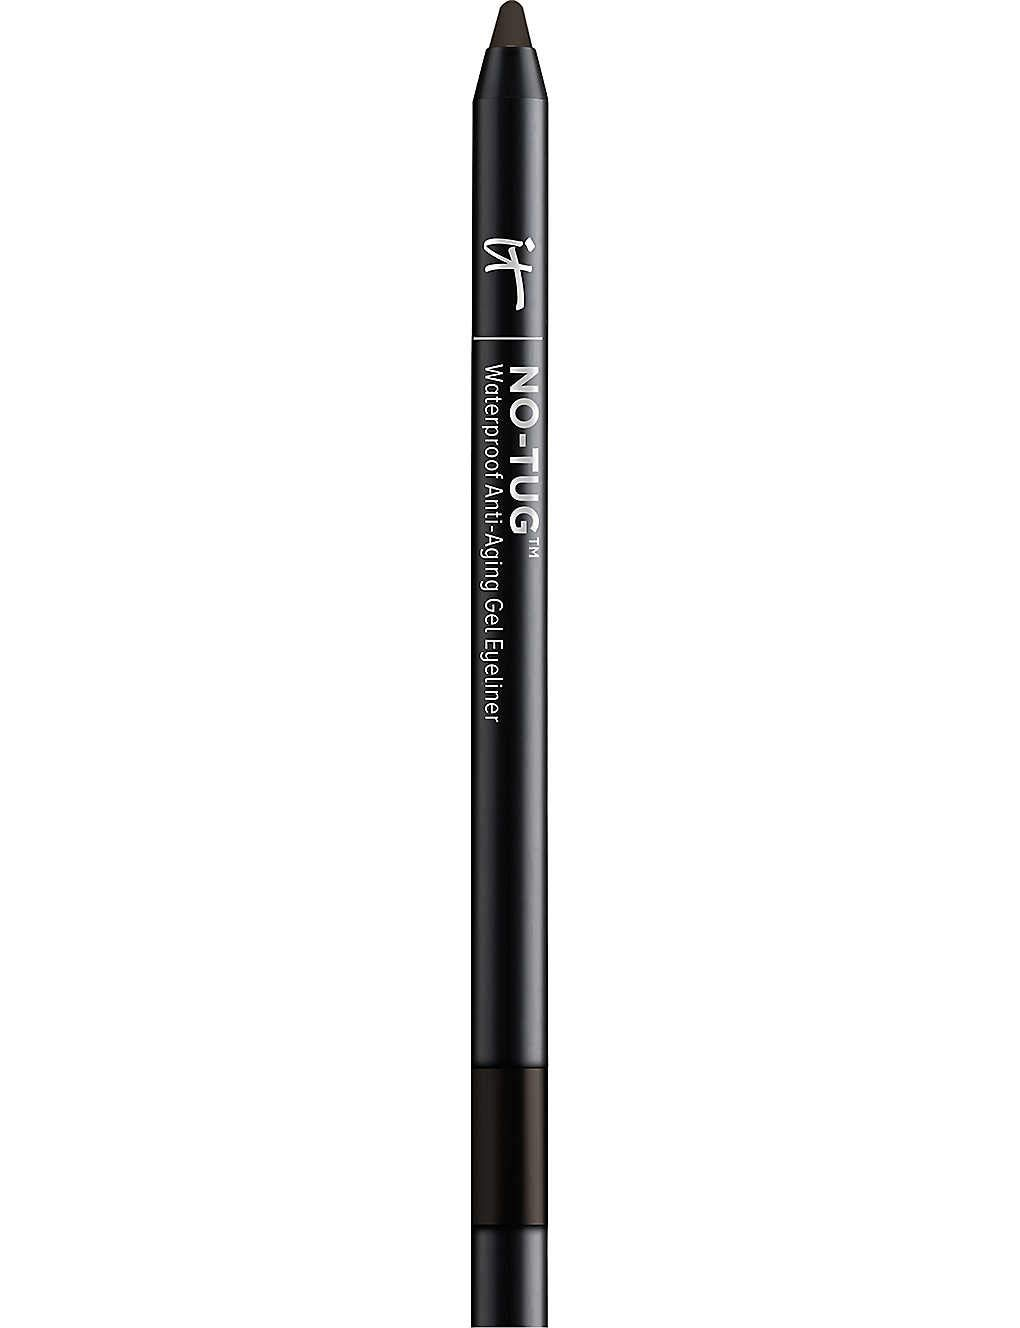 it Cosmetics No-Tug Waterproof Gel Eyeliner in Black/Brown (0.50g)